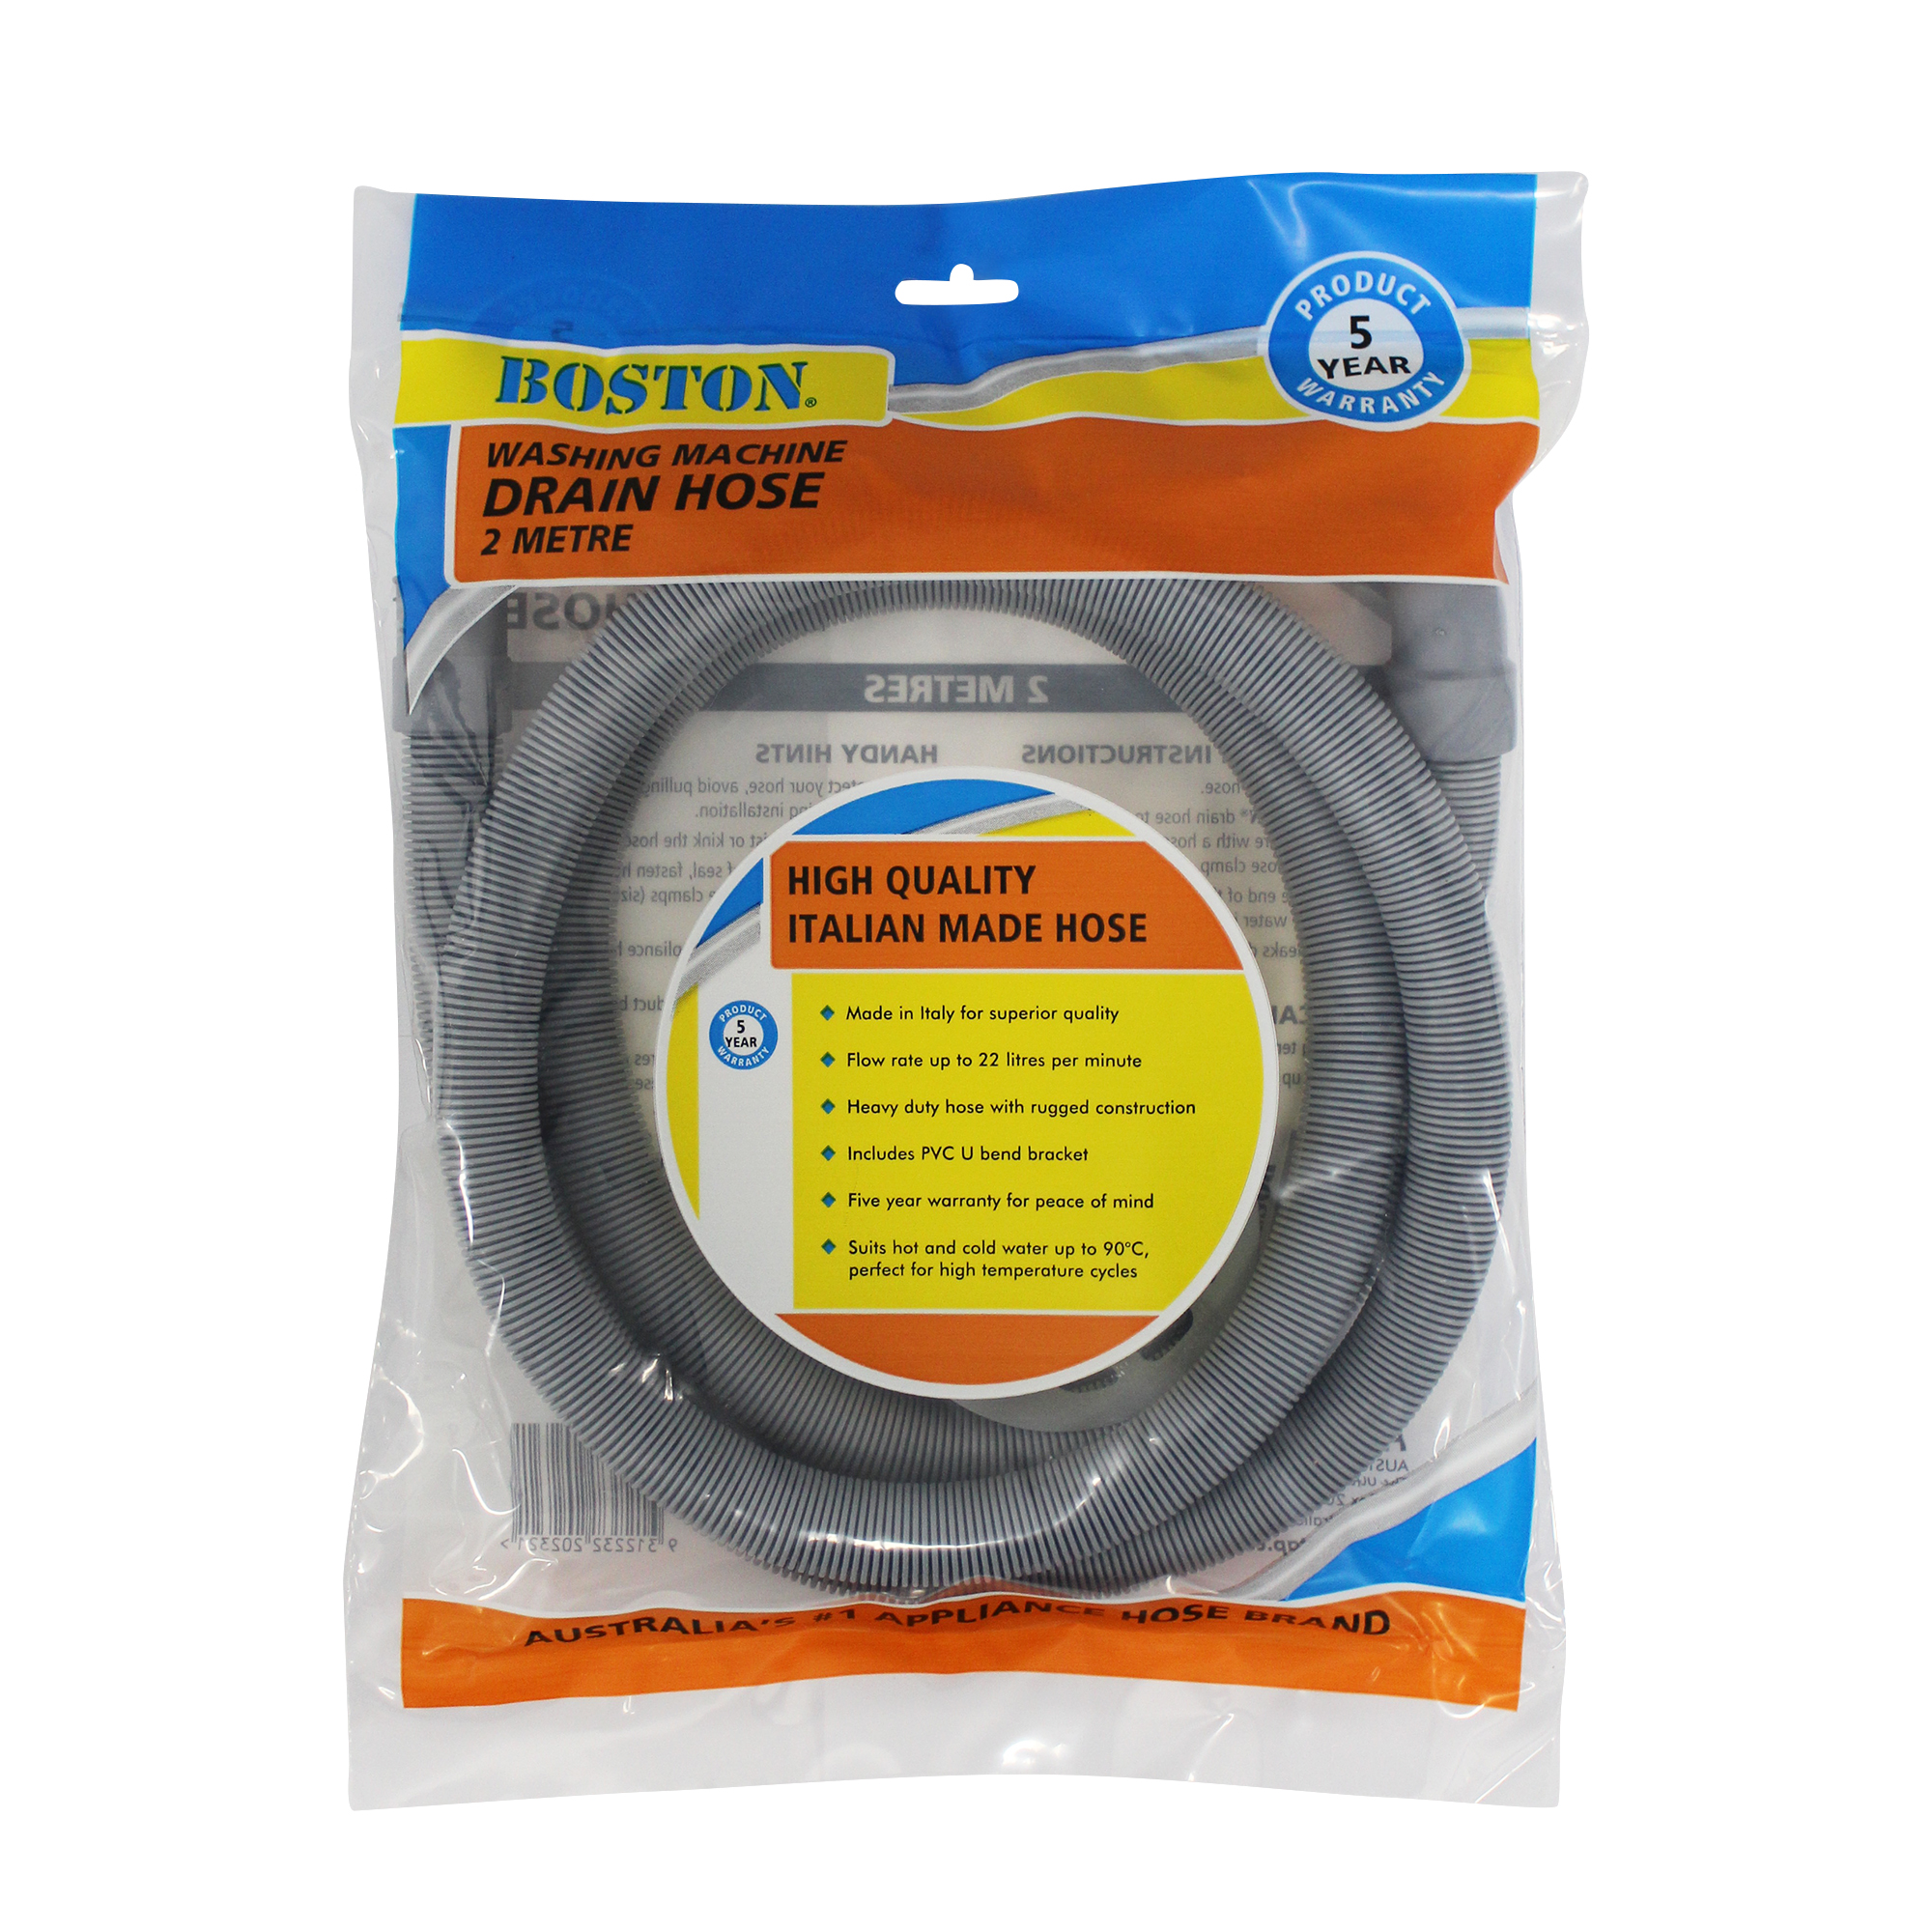 Drain Hose Washing Machine Amp Dishwasher Hoses Boston